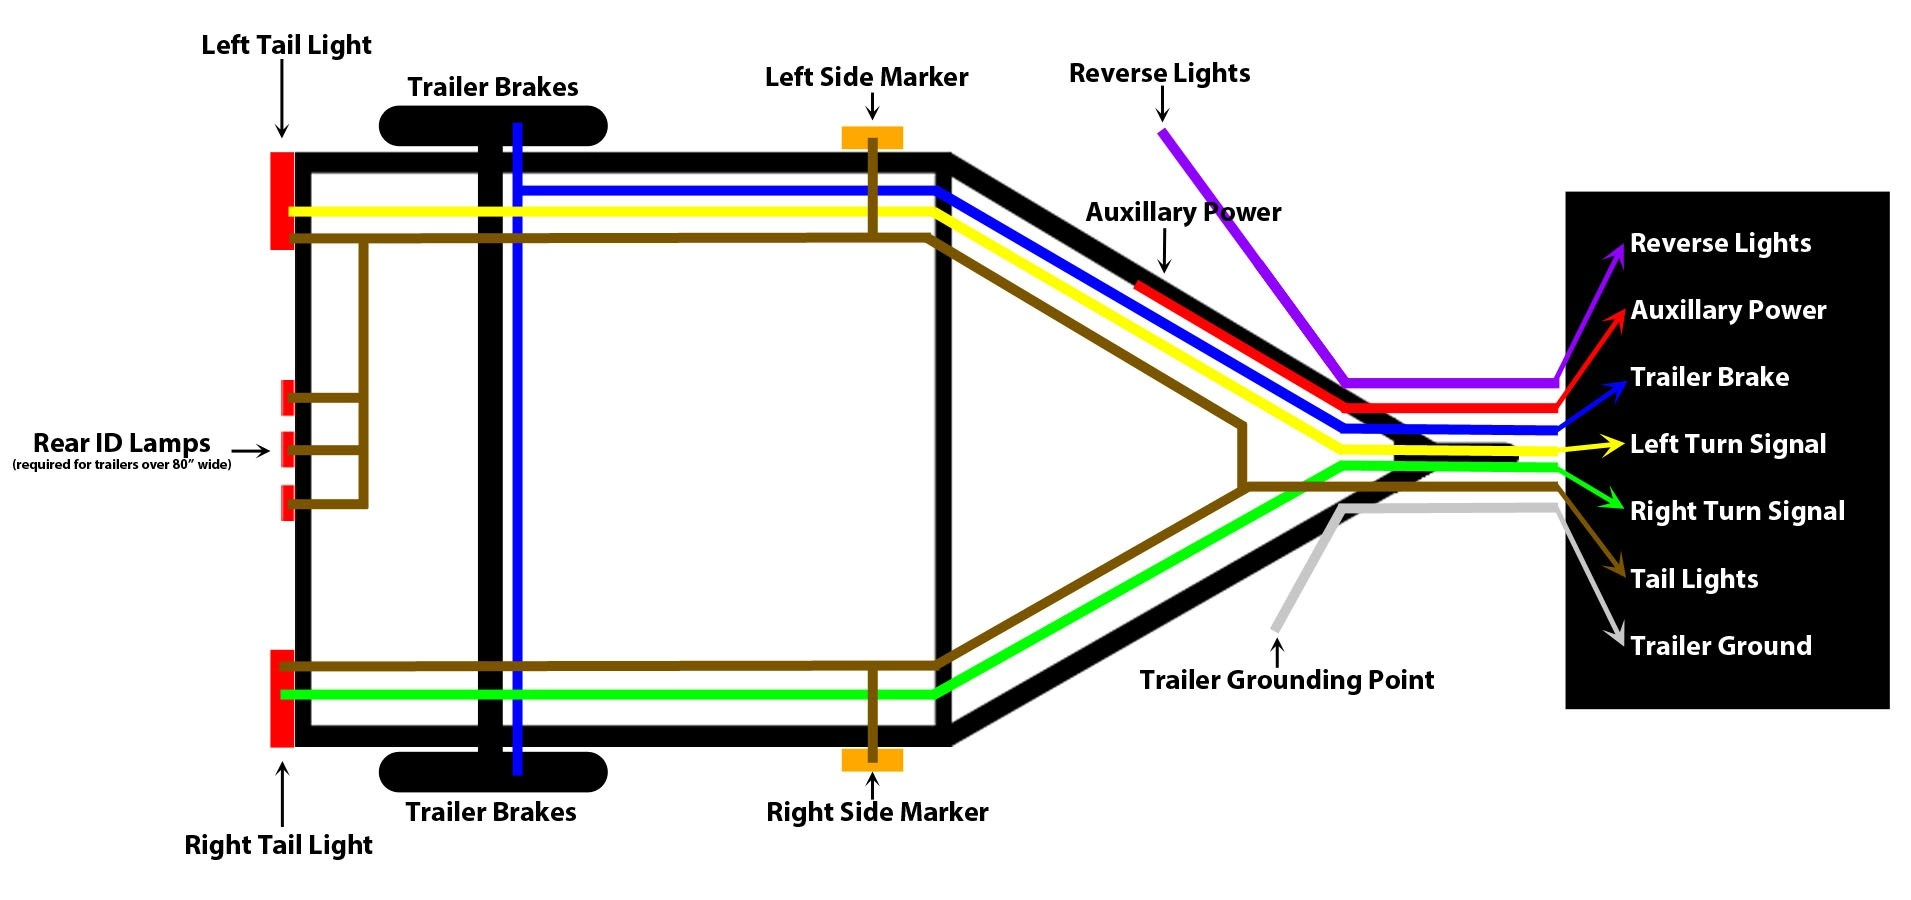 Circle J Horse Trailer Wiring Diagram - Simple Wiring Diagrams on horse trailer parts, horse trailer interior, horse trailer ac, horse trailer lights, horse trailer blue prints, horse trailer specifications, horse trailer maintenance, horse trailer drawings, horse trailer suspension, horse trailer layouts, horse trailer axles,